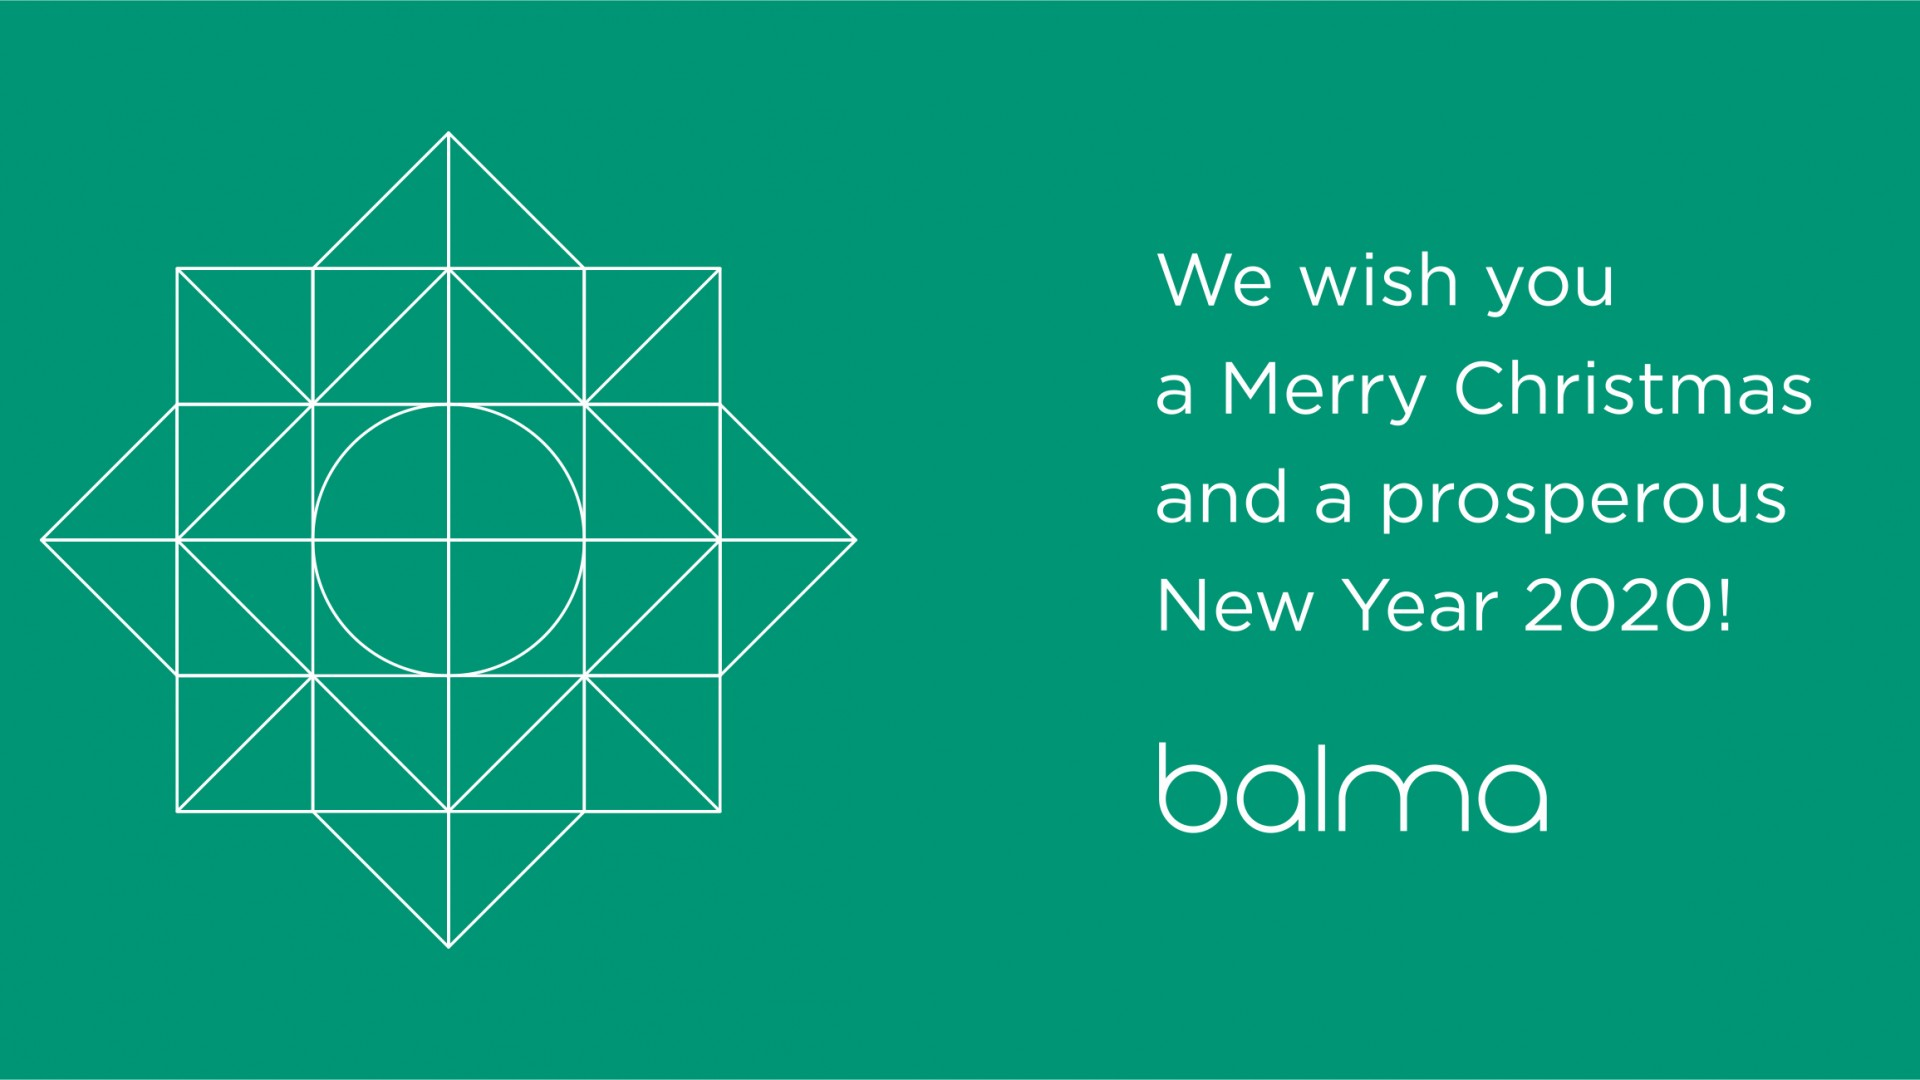 Merry Christmas and a prosperous New Year for 2020!